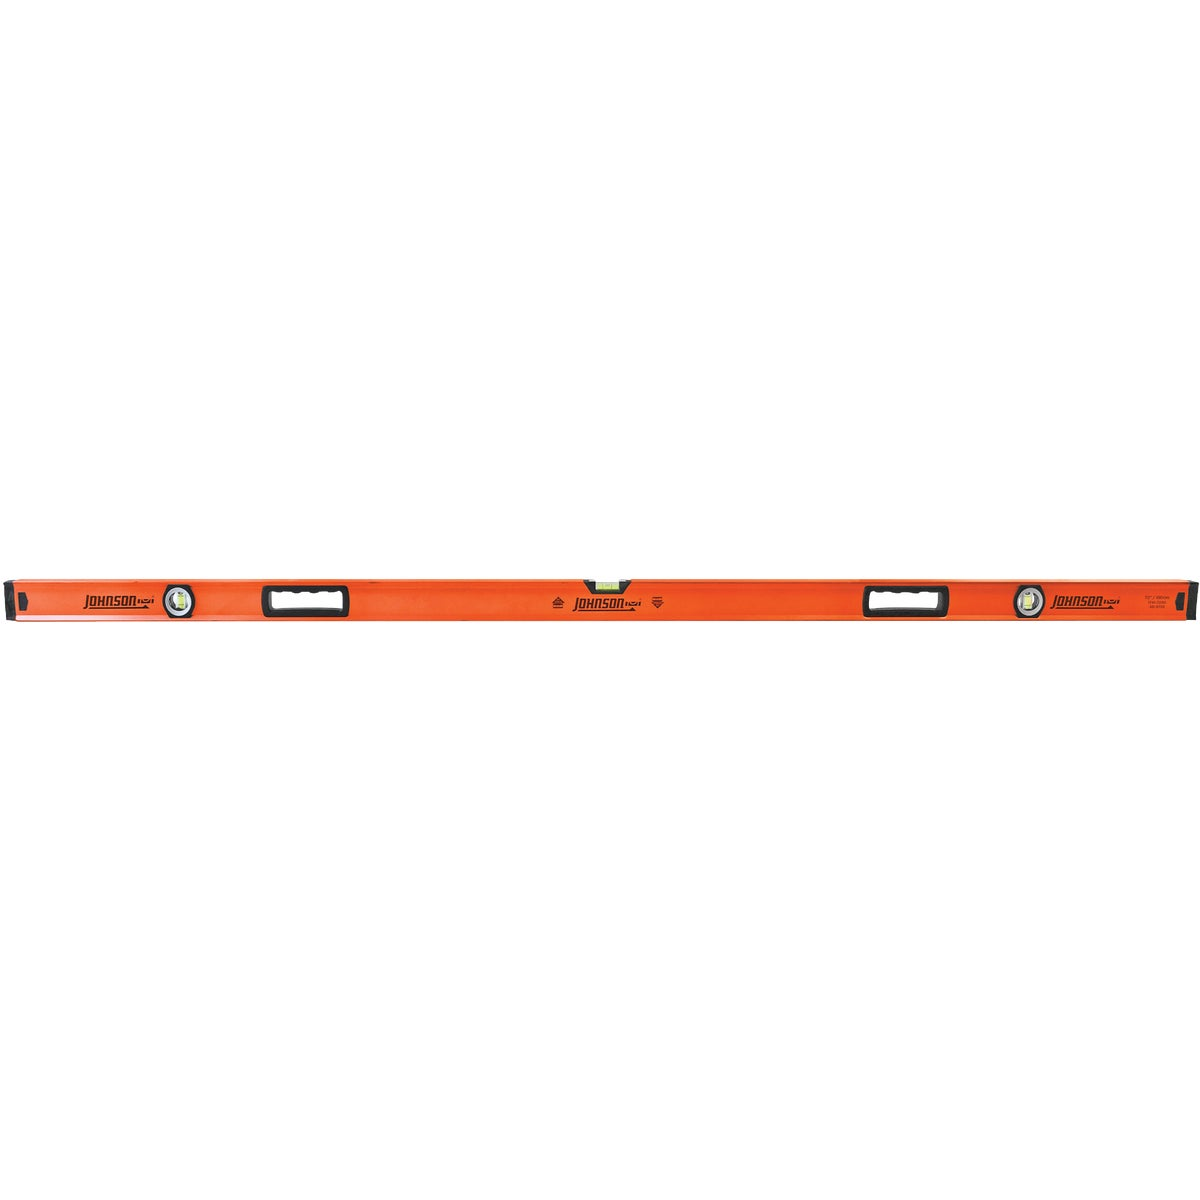 "72"" ALUM BOX BEAM LEVEL - 1711-7200 by Johnson Level & Tool"